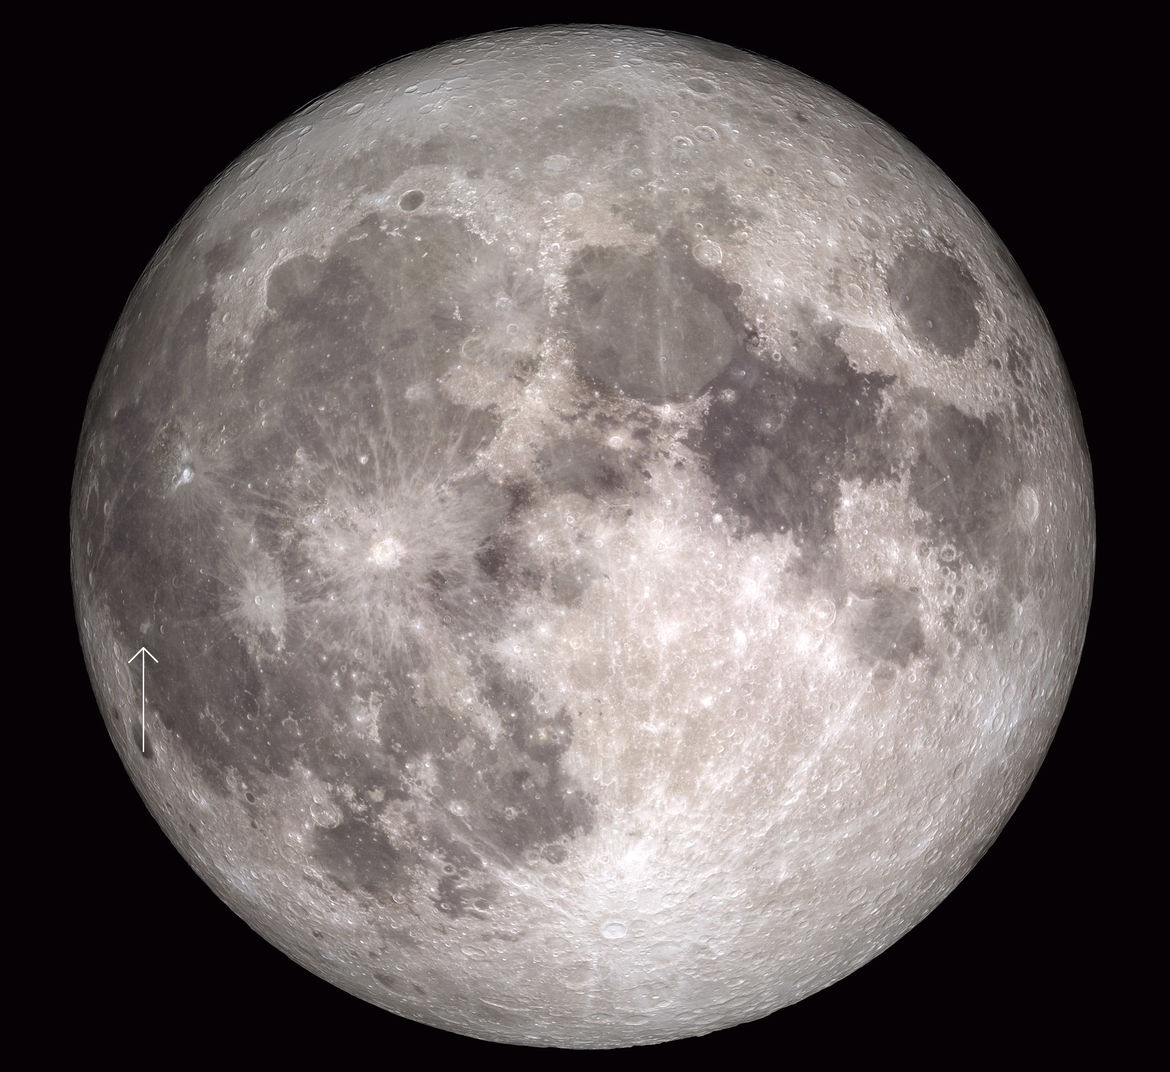 Composite image of the full Moon made from Lunar Reconnaissance Orbiter images, with the location of Reiner Gamma arrowed (the crater Reiner is just to the right). Credit: NASA's Scientific Visualization Studio